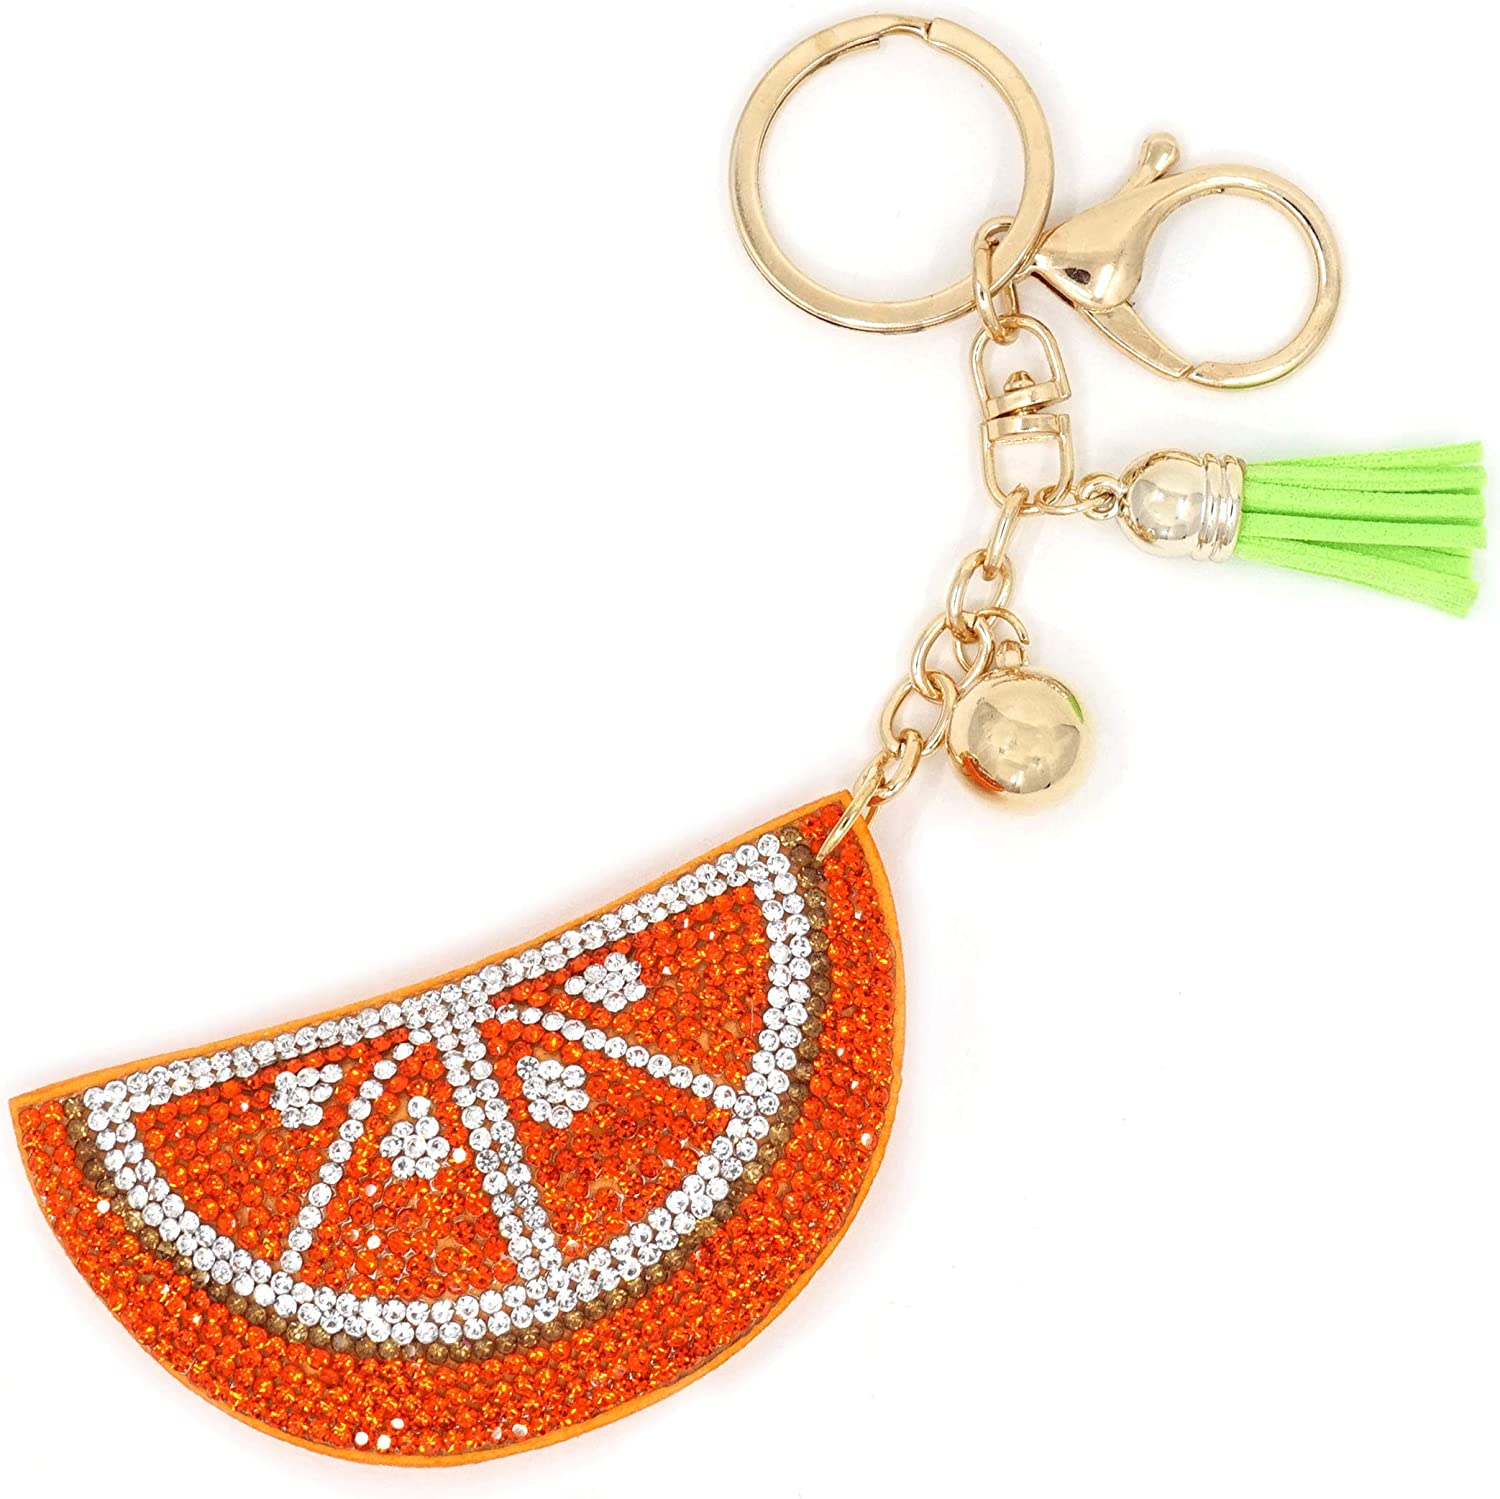 Teri's Boutique Strawberry Apple Pineapple Orange Watermelon Fruit Love Rhinestone Cushion Pendant Charm Keychain